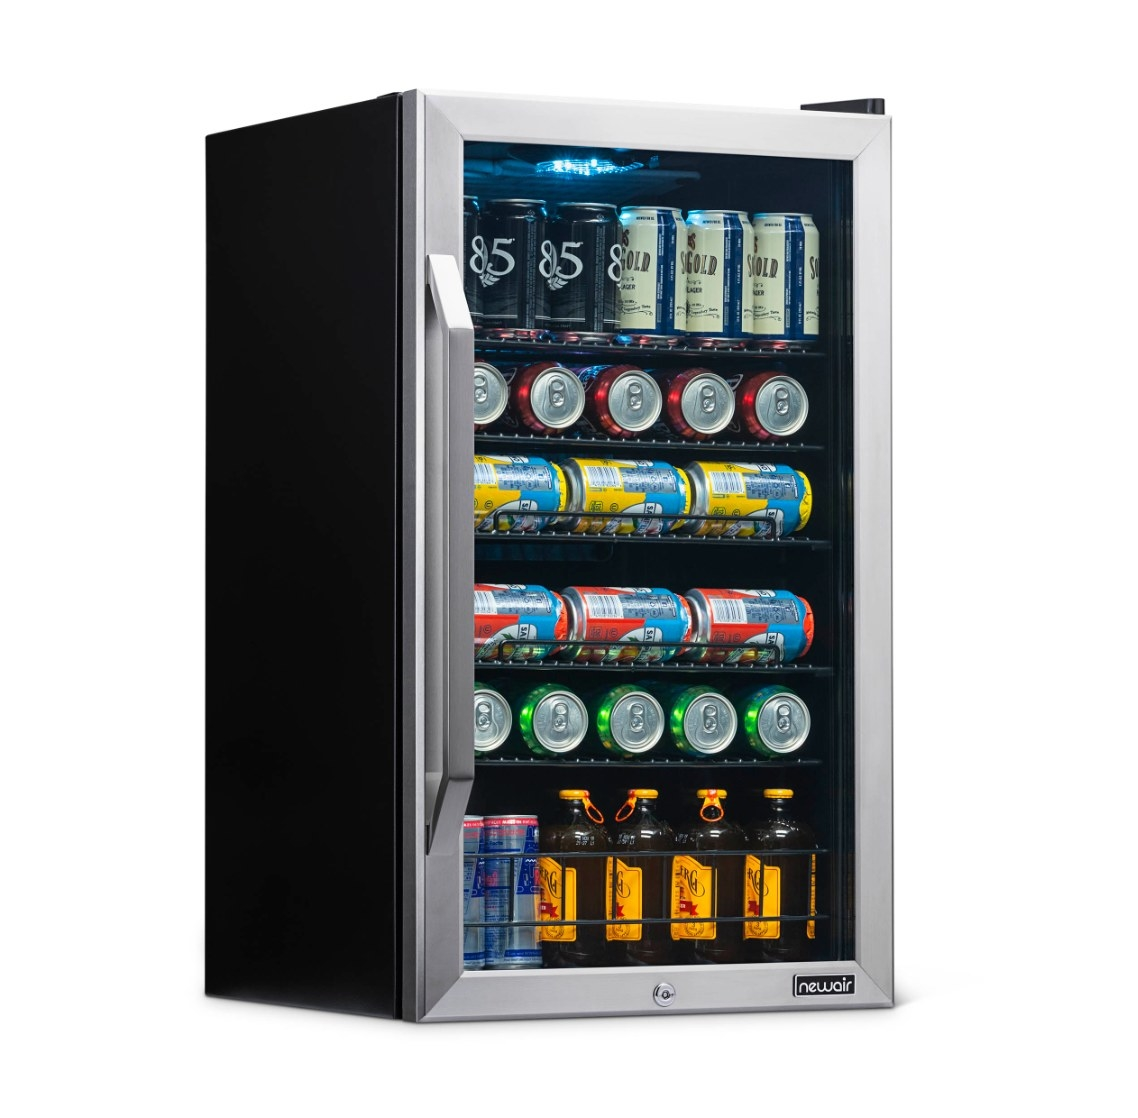 The beverage refrigerator in black and steel